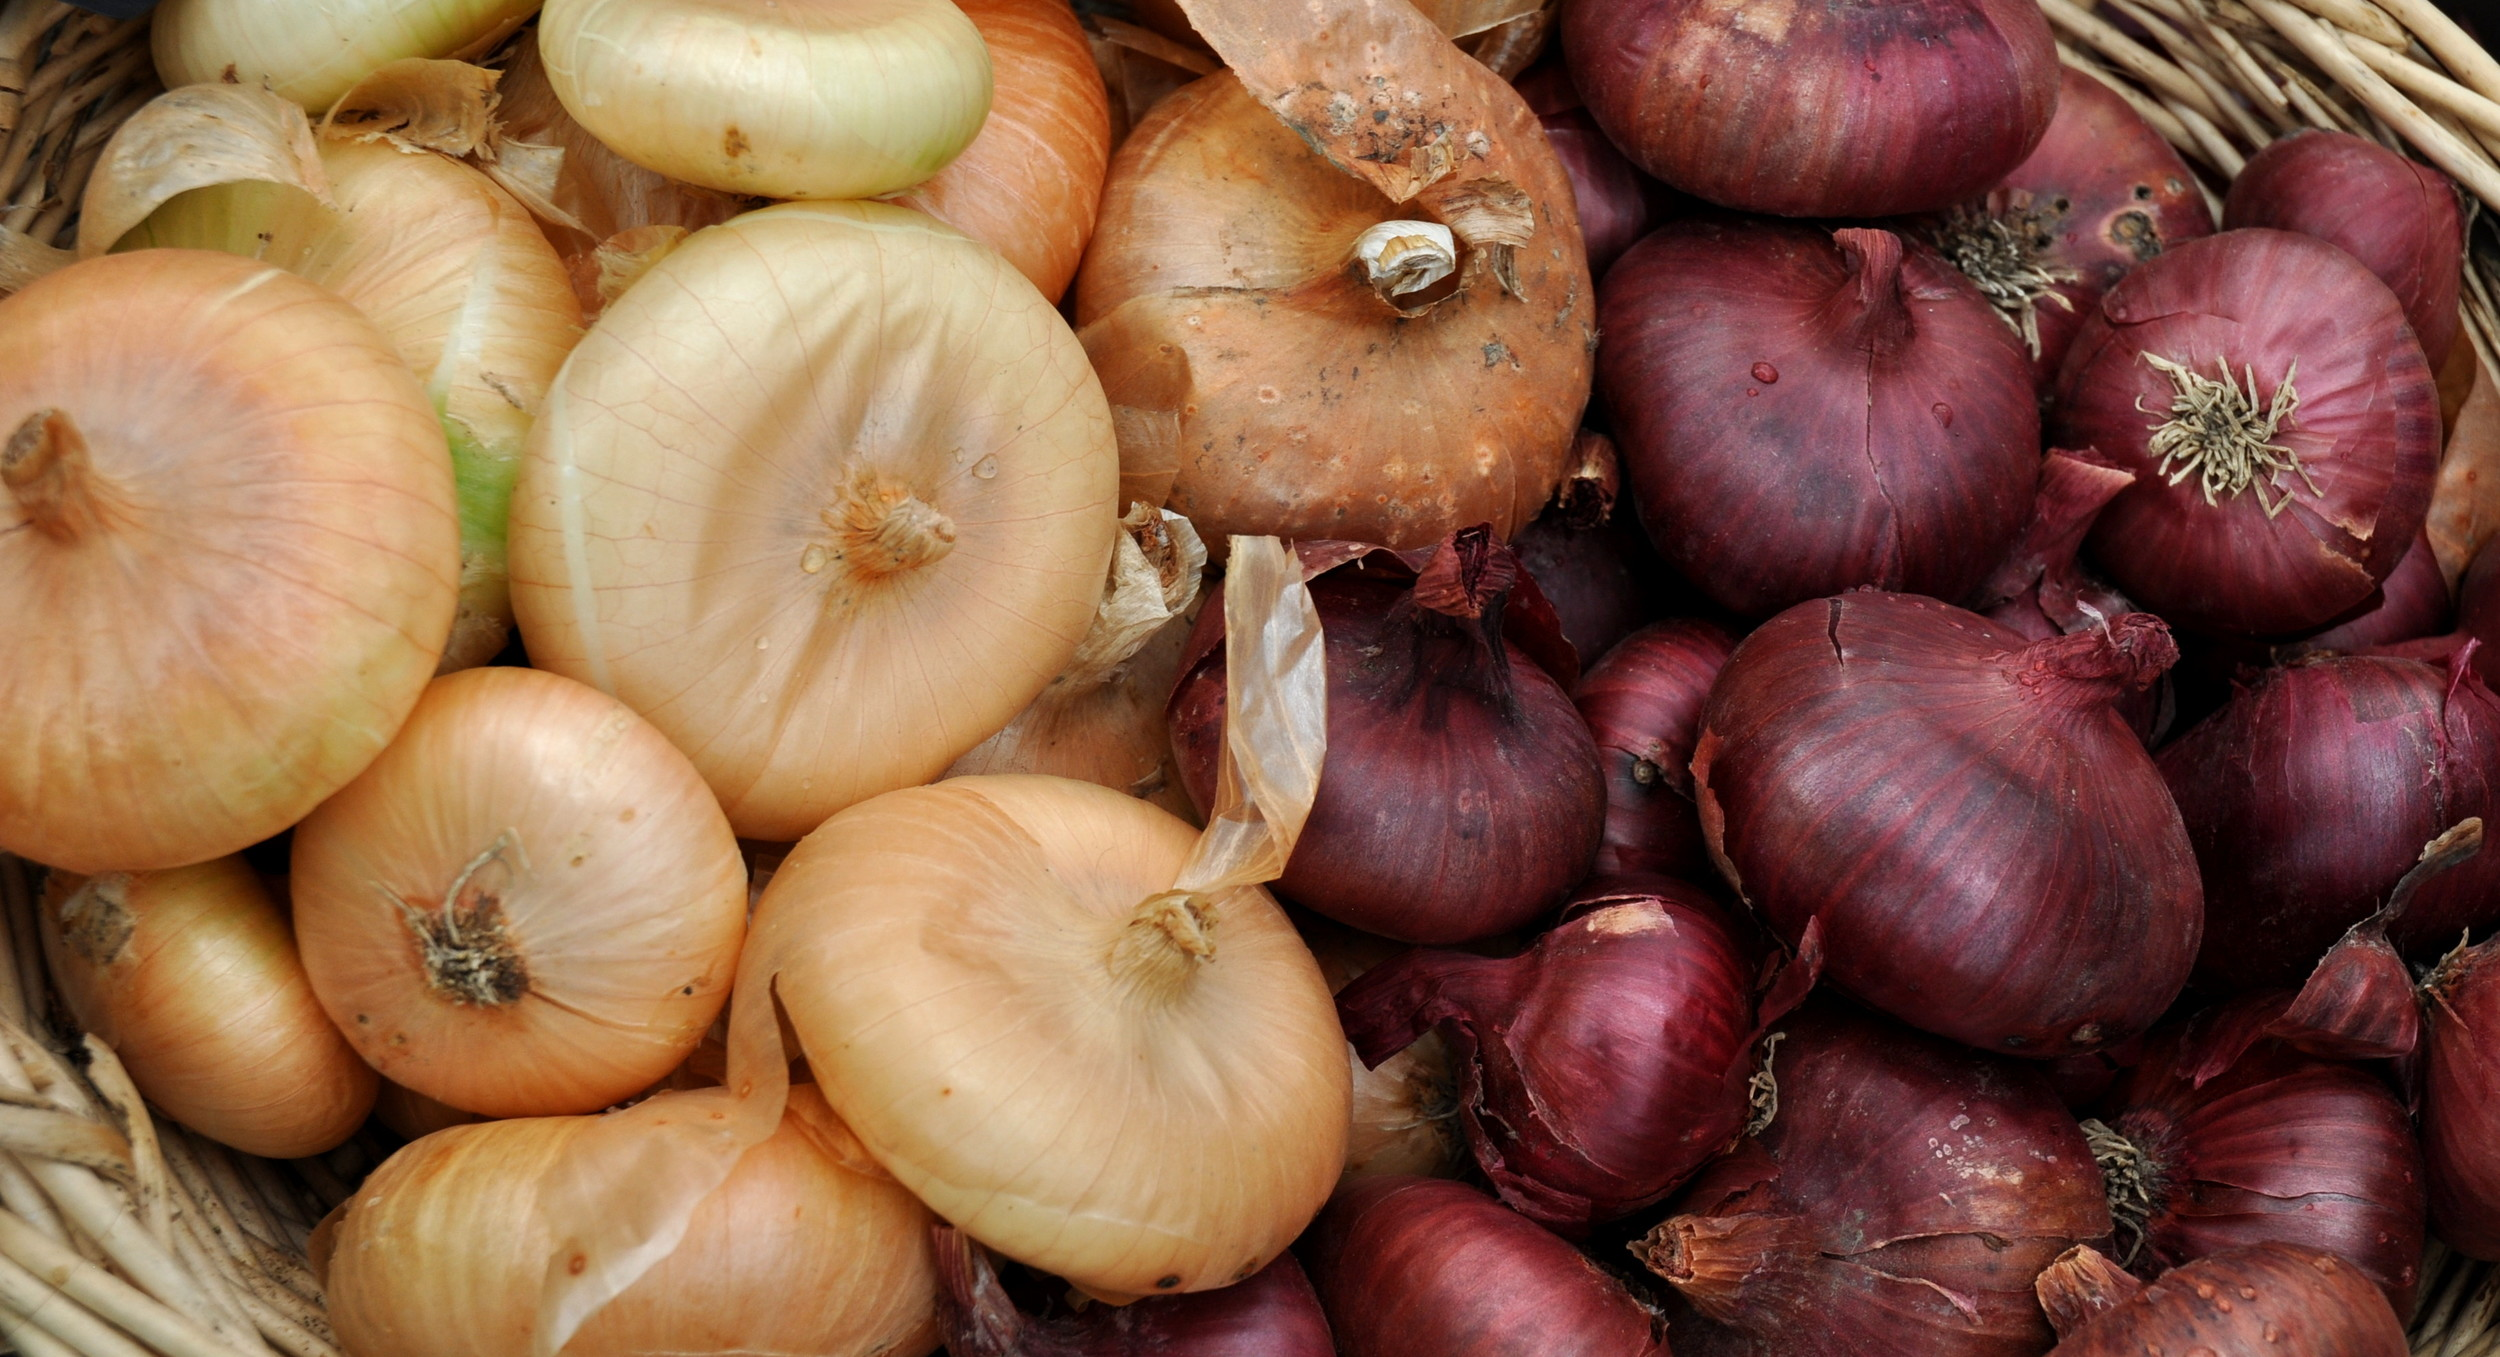 Cipollini onions from One Leaf Farm at Ballard Farmers Market. Copyright Zachary D. Lyons.